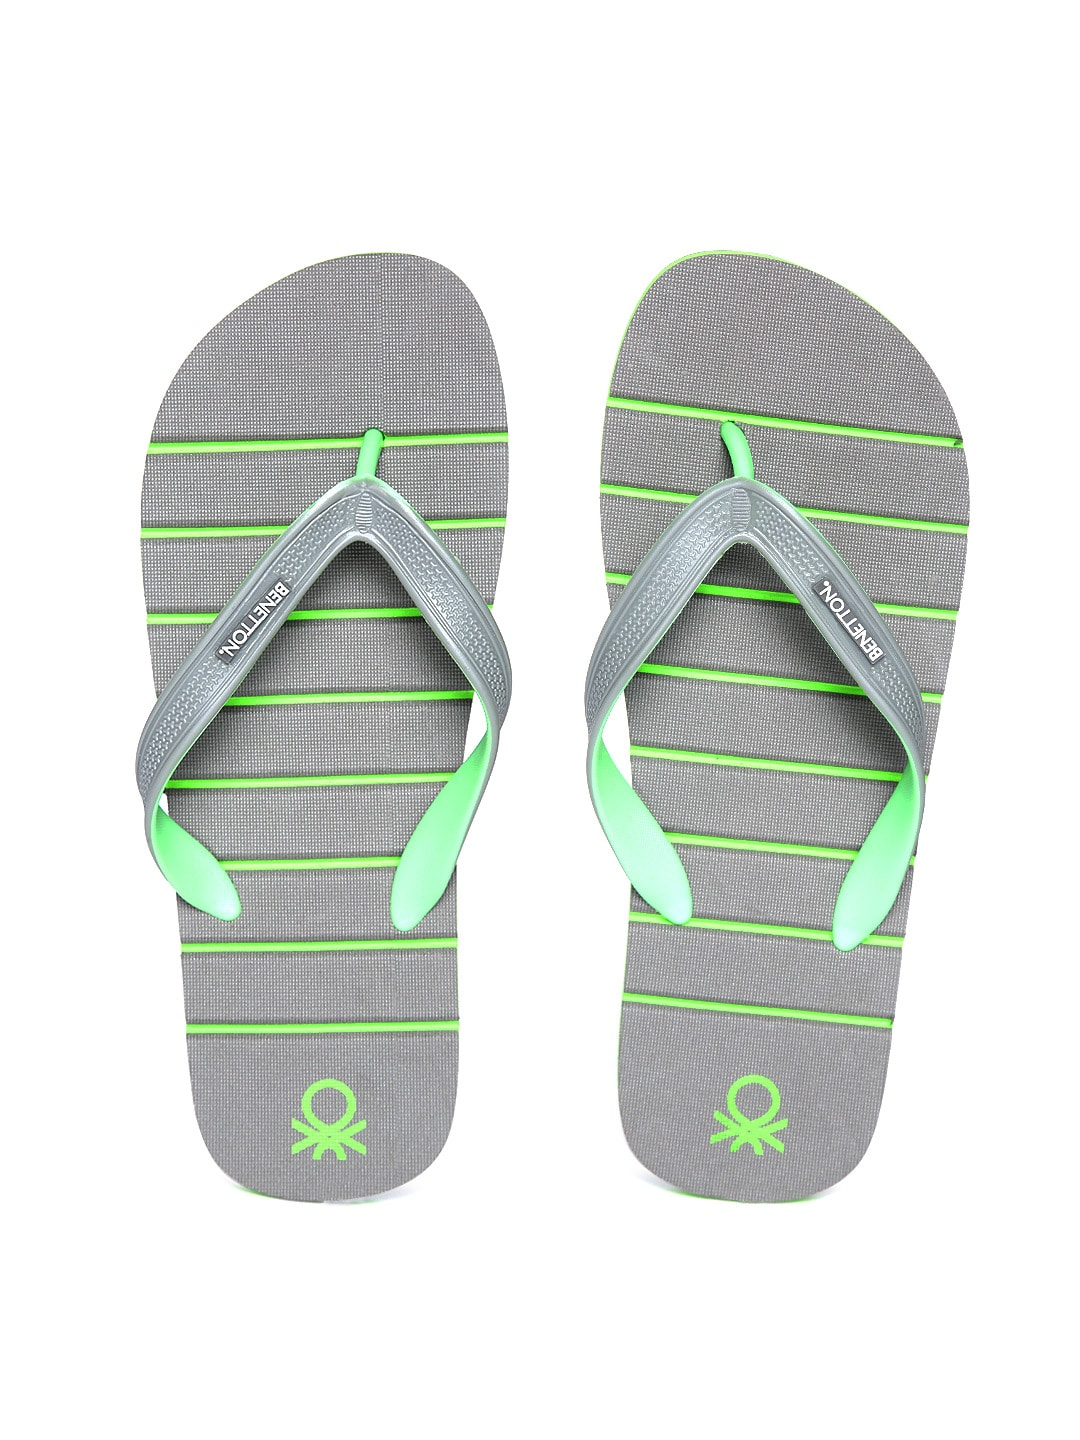 298e3bb26c9ec United Colors Of United Colors Of Benetton Flip Flops Jackets - Buy United  Colors Of United Colors Of Benetton Flip Flops Jackets online in India